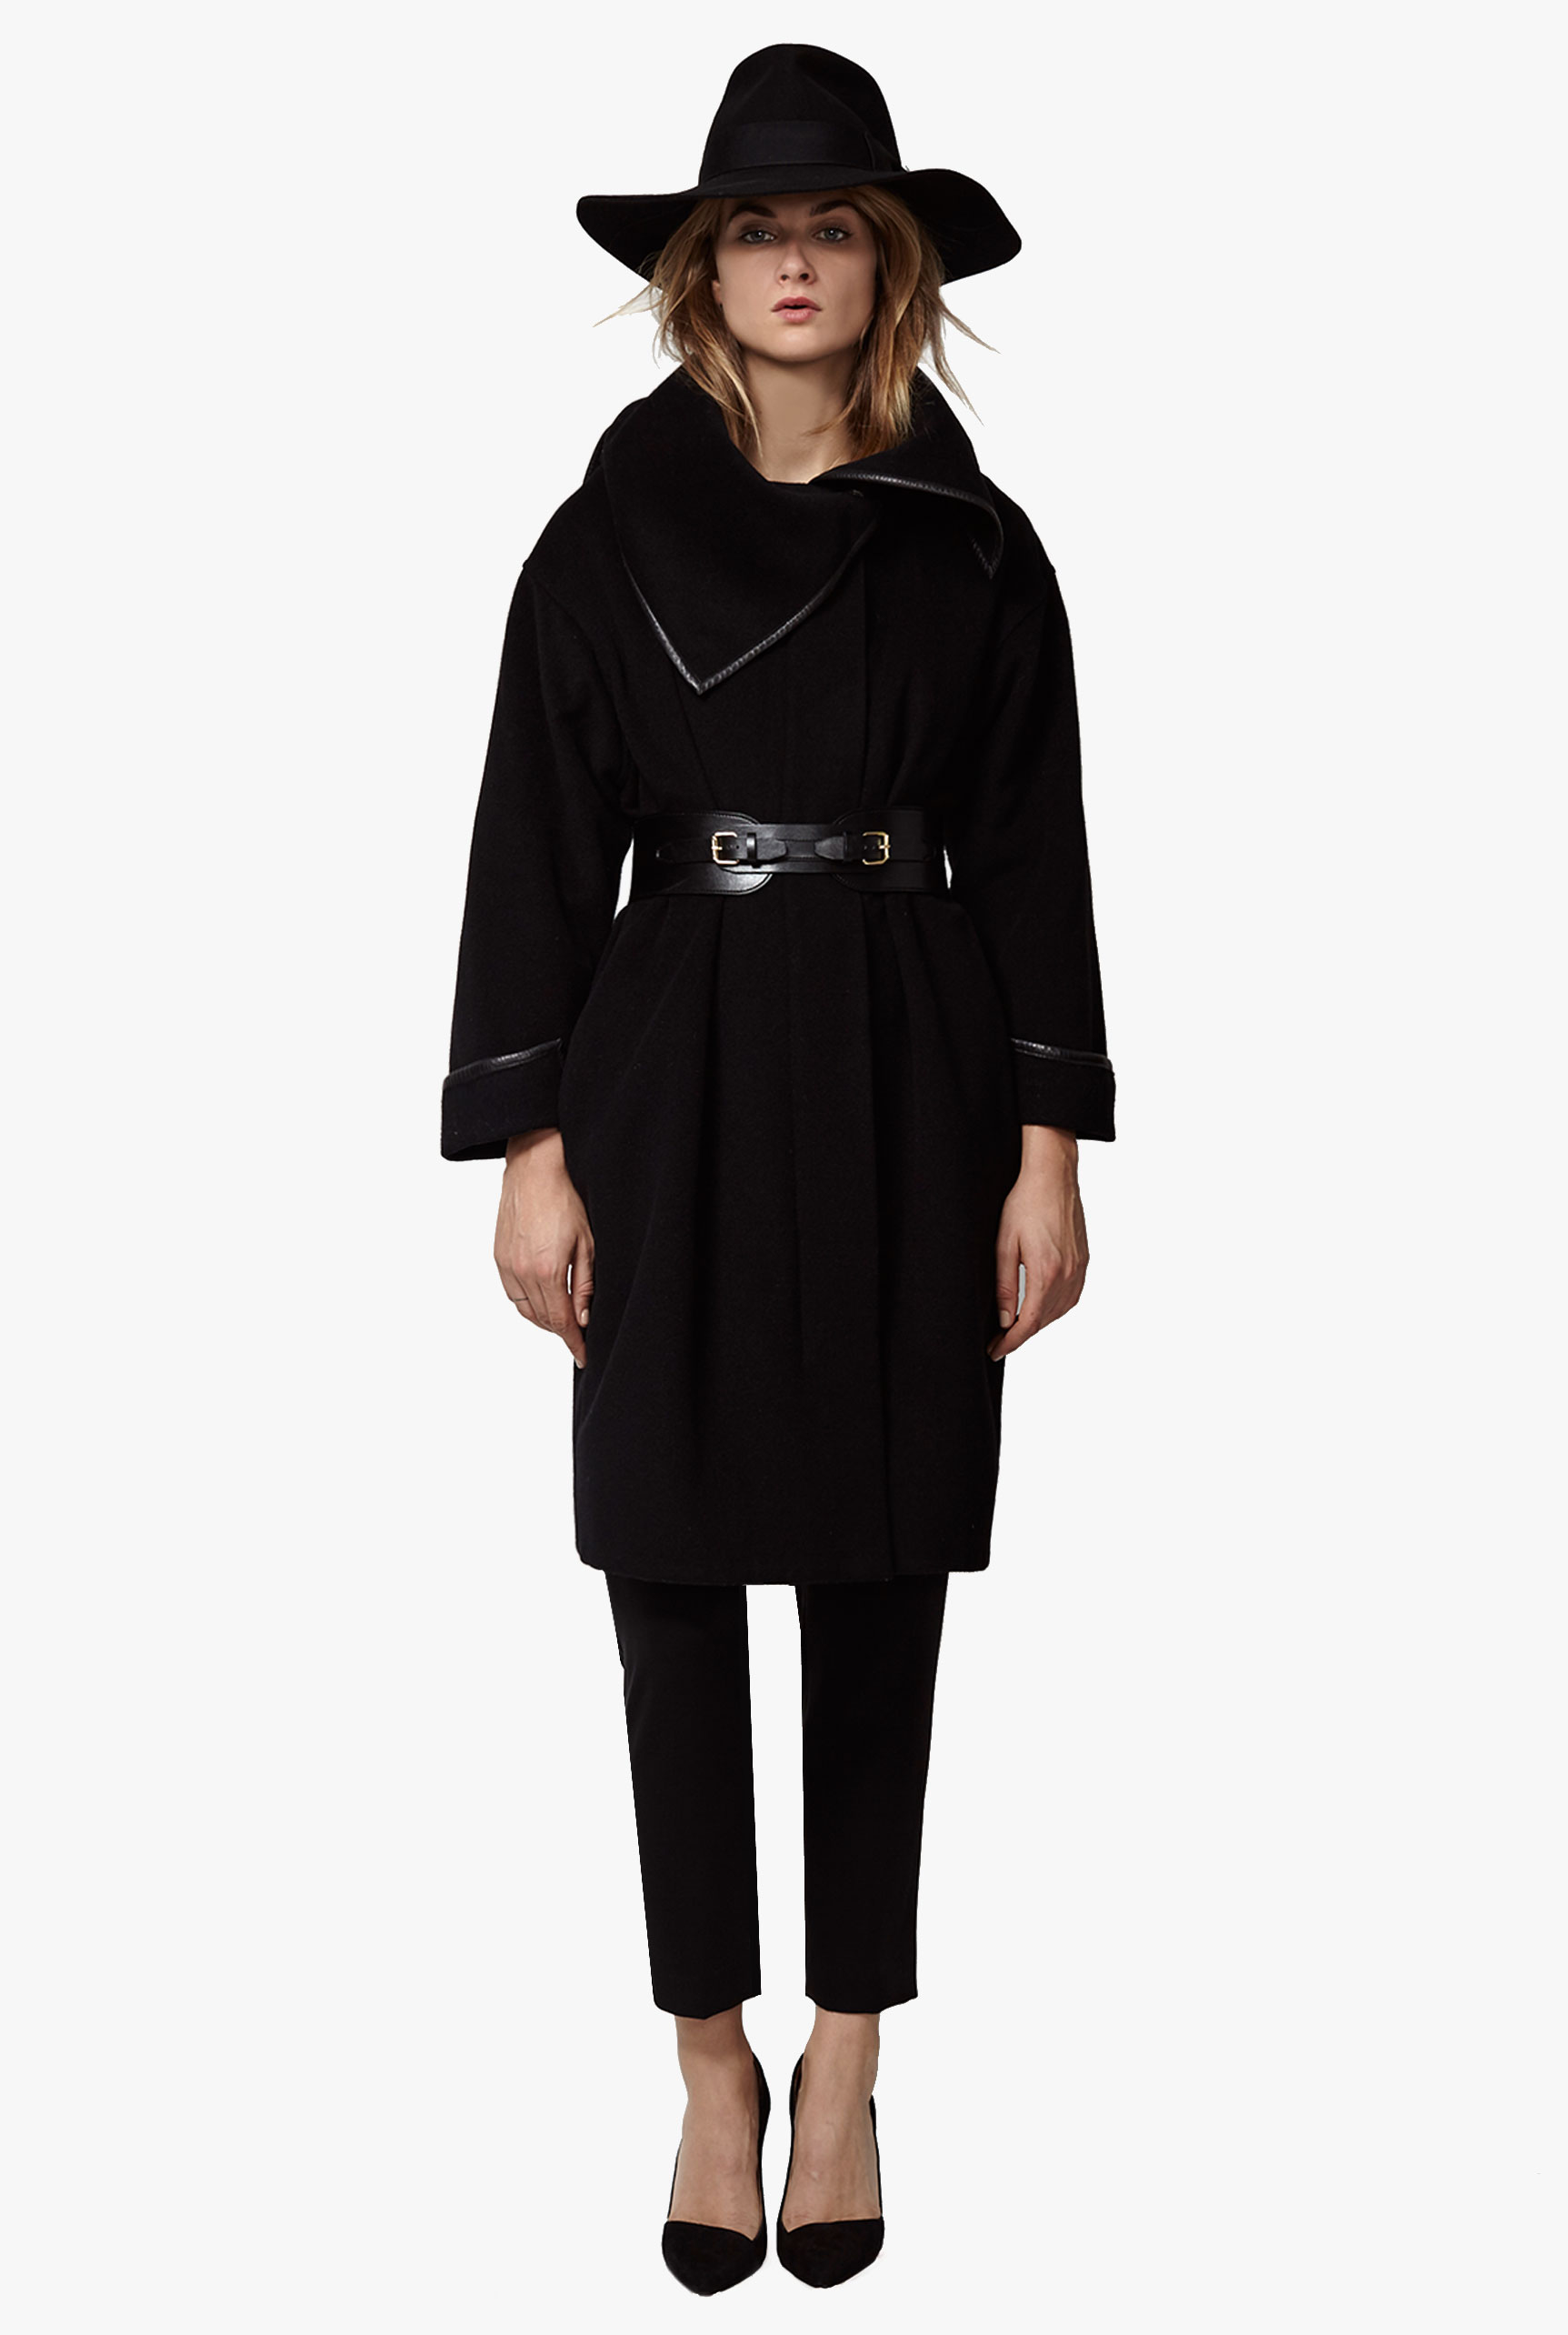 CLOUD 9 black coat